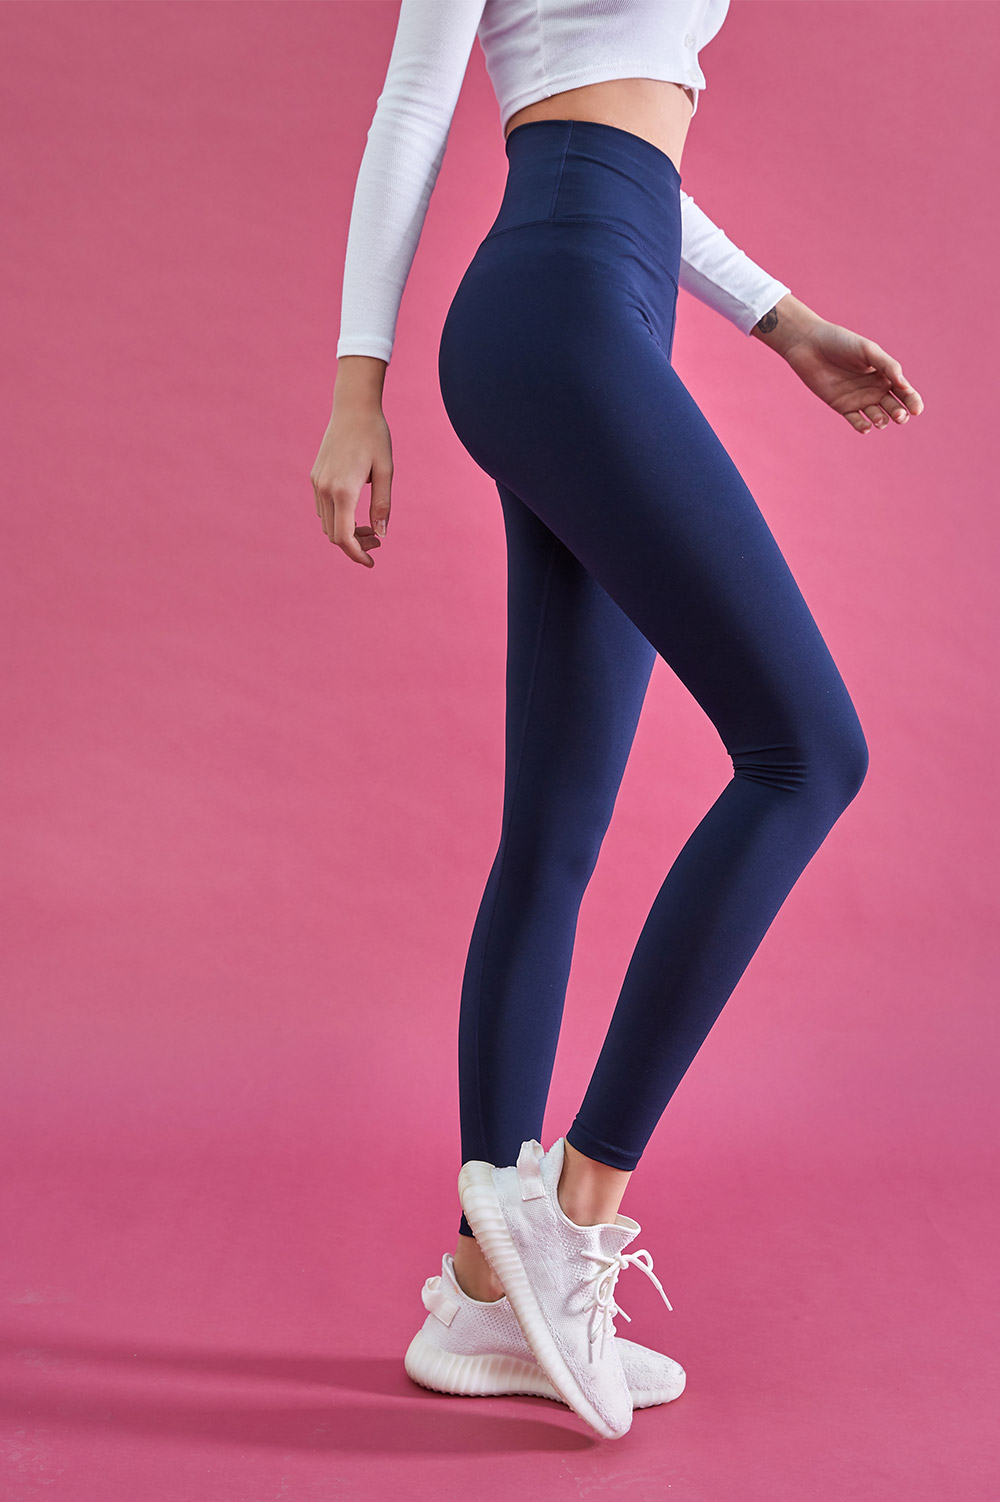 //cdn.nhanh.vn/cdn/store/29770/psCT/20190108/11027736/_5Kg_Perfect_Line_Leggings_Plus_(2019_22_46).jpg